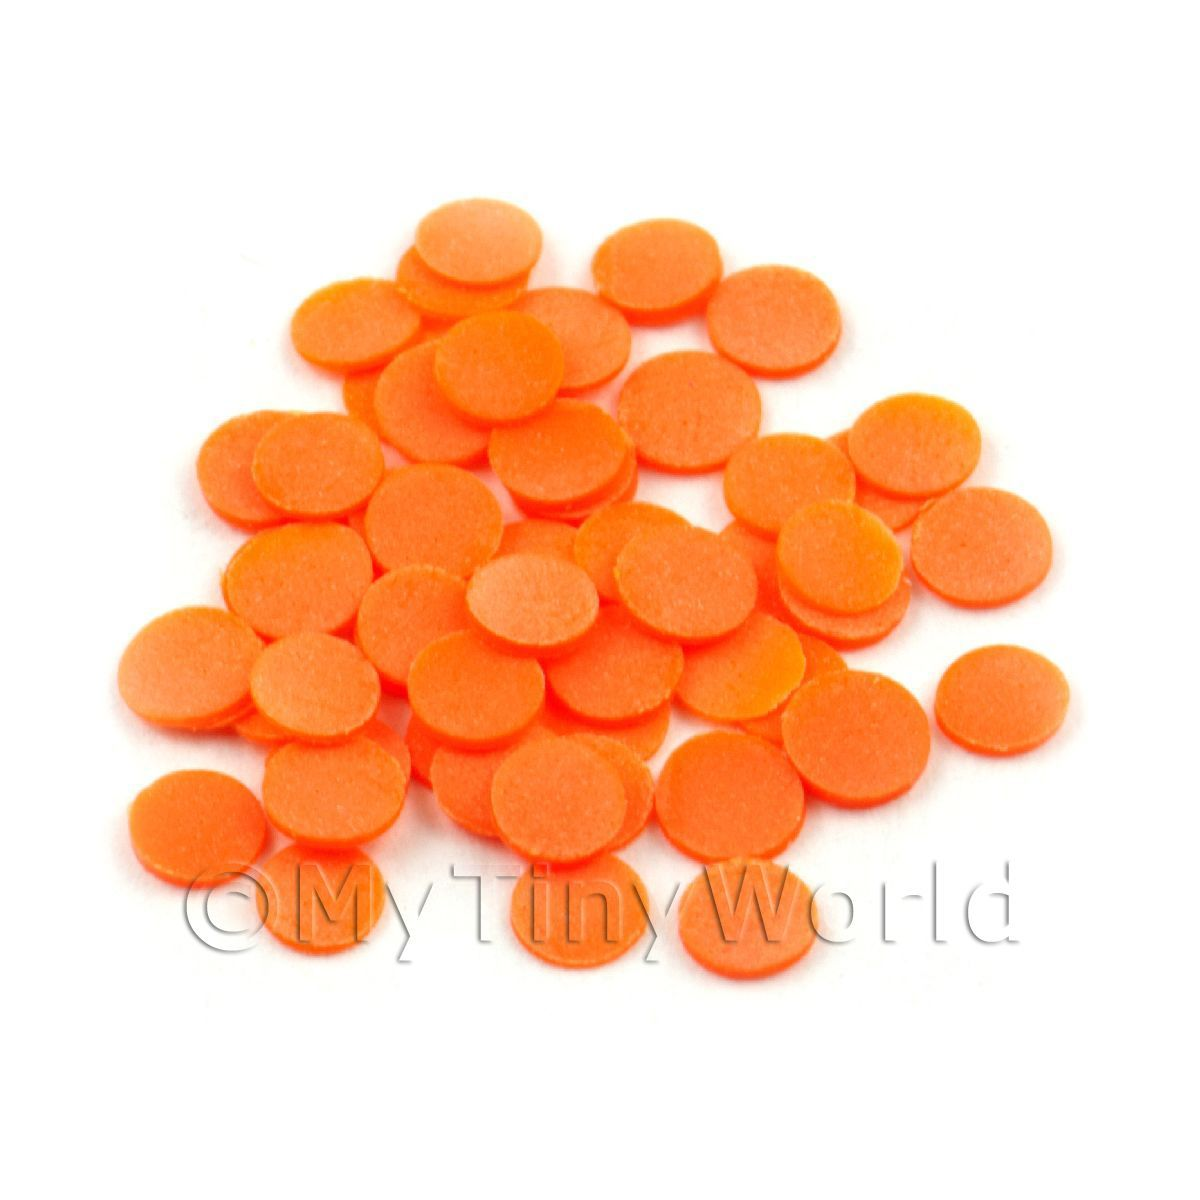 50 Orange Polka Dot Cane Slices - Nail Art (11NS17)